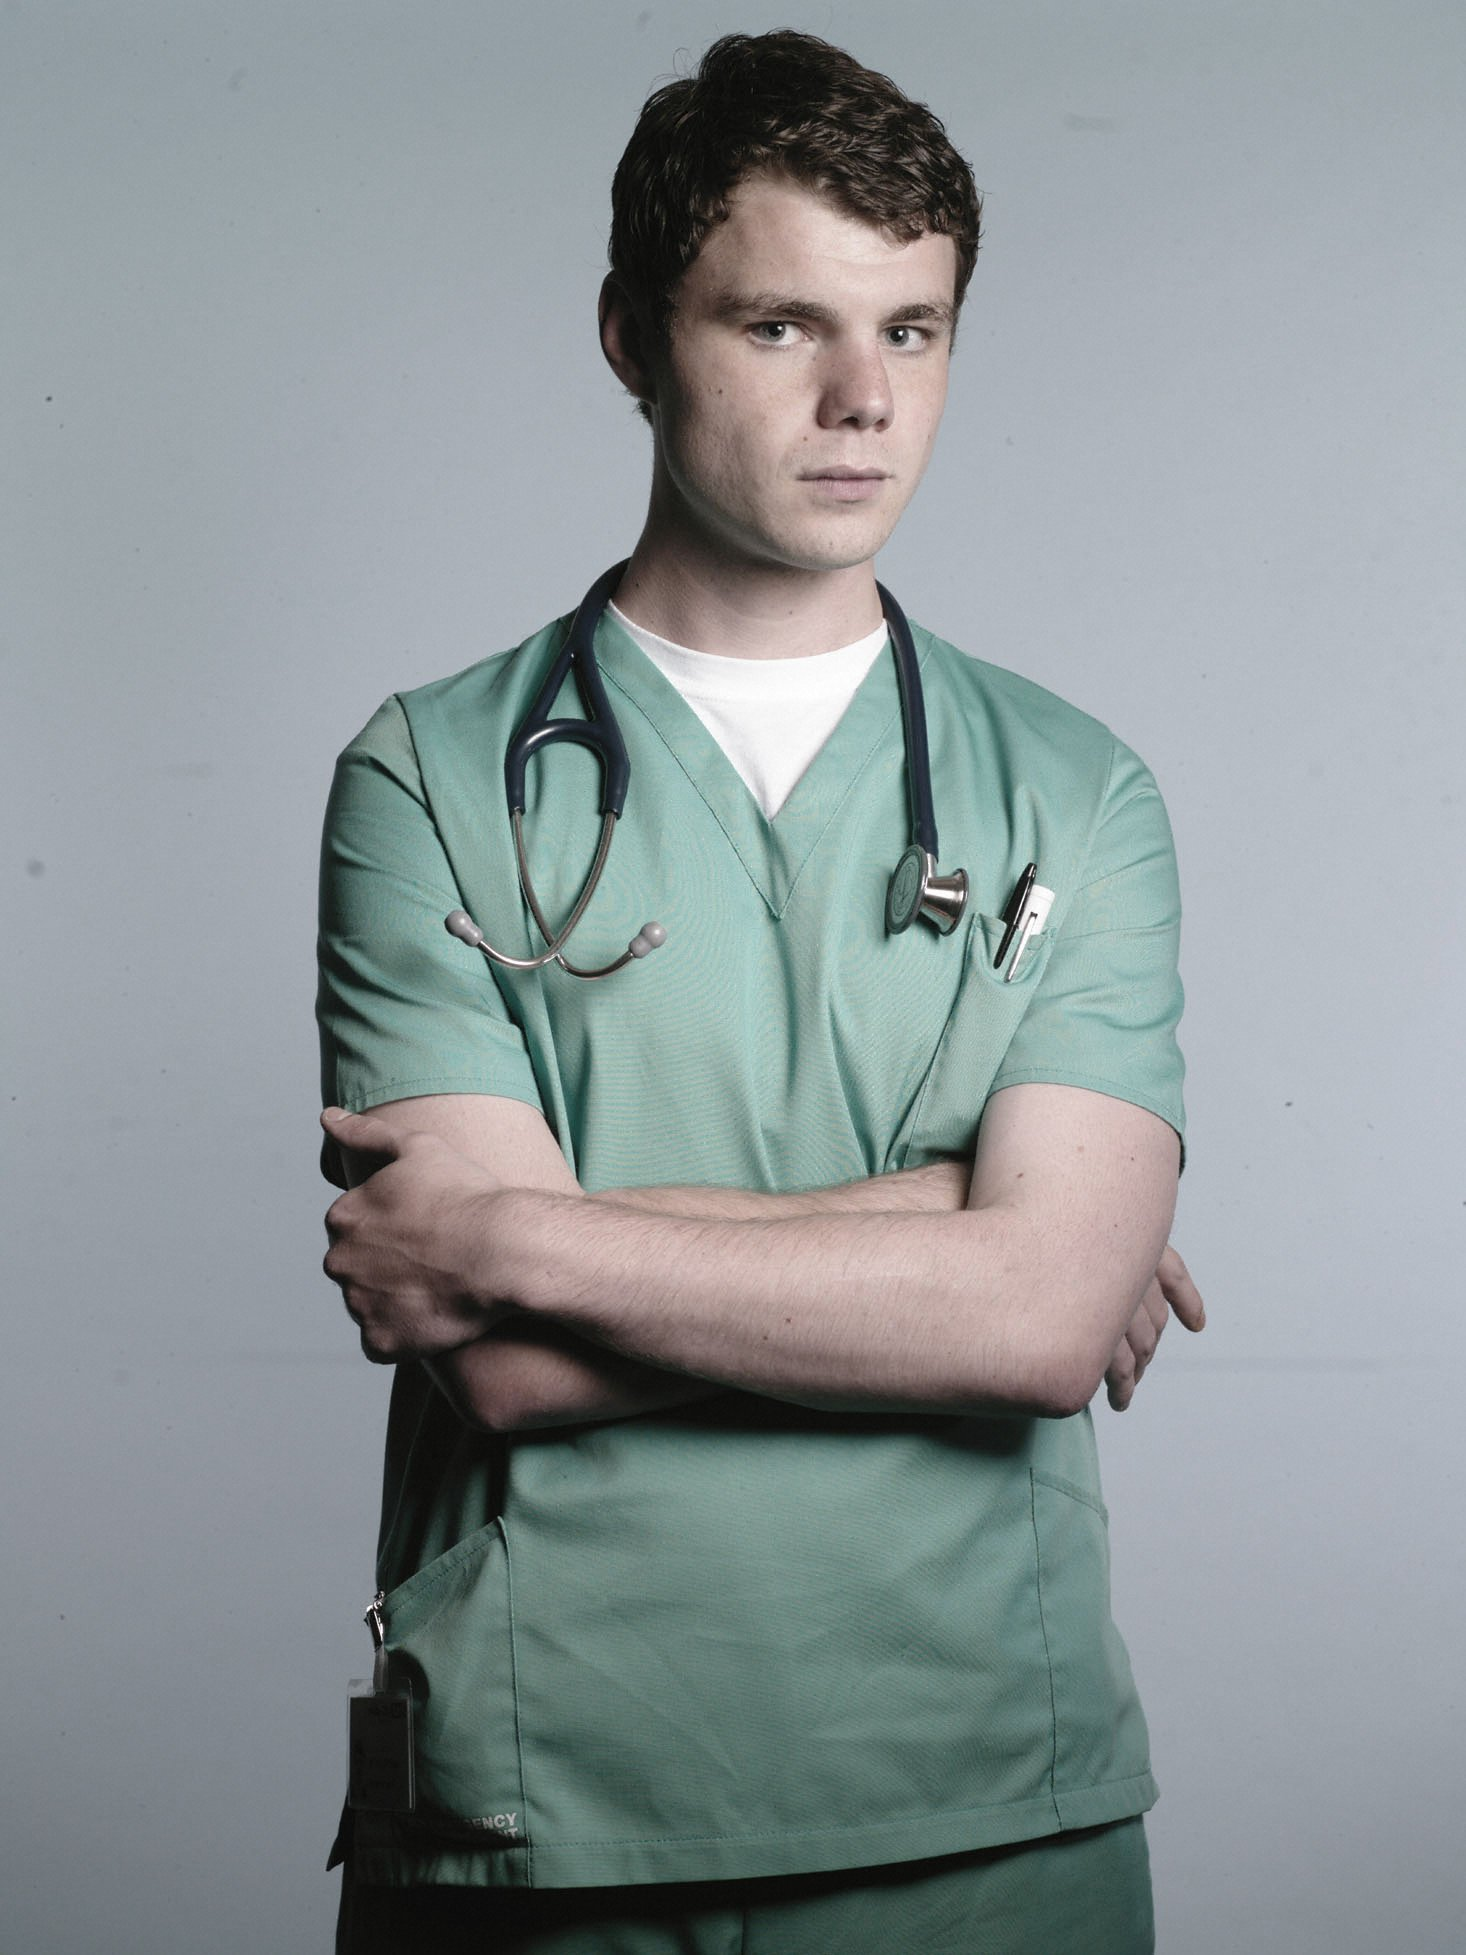 New doctor Toby struggles on his first day